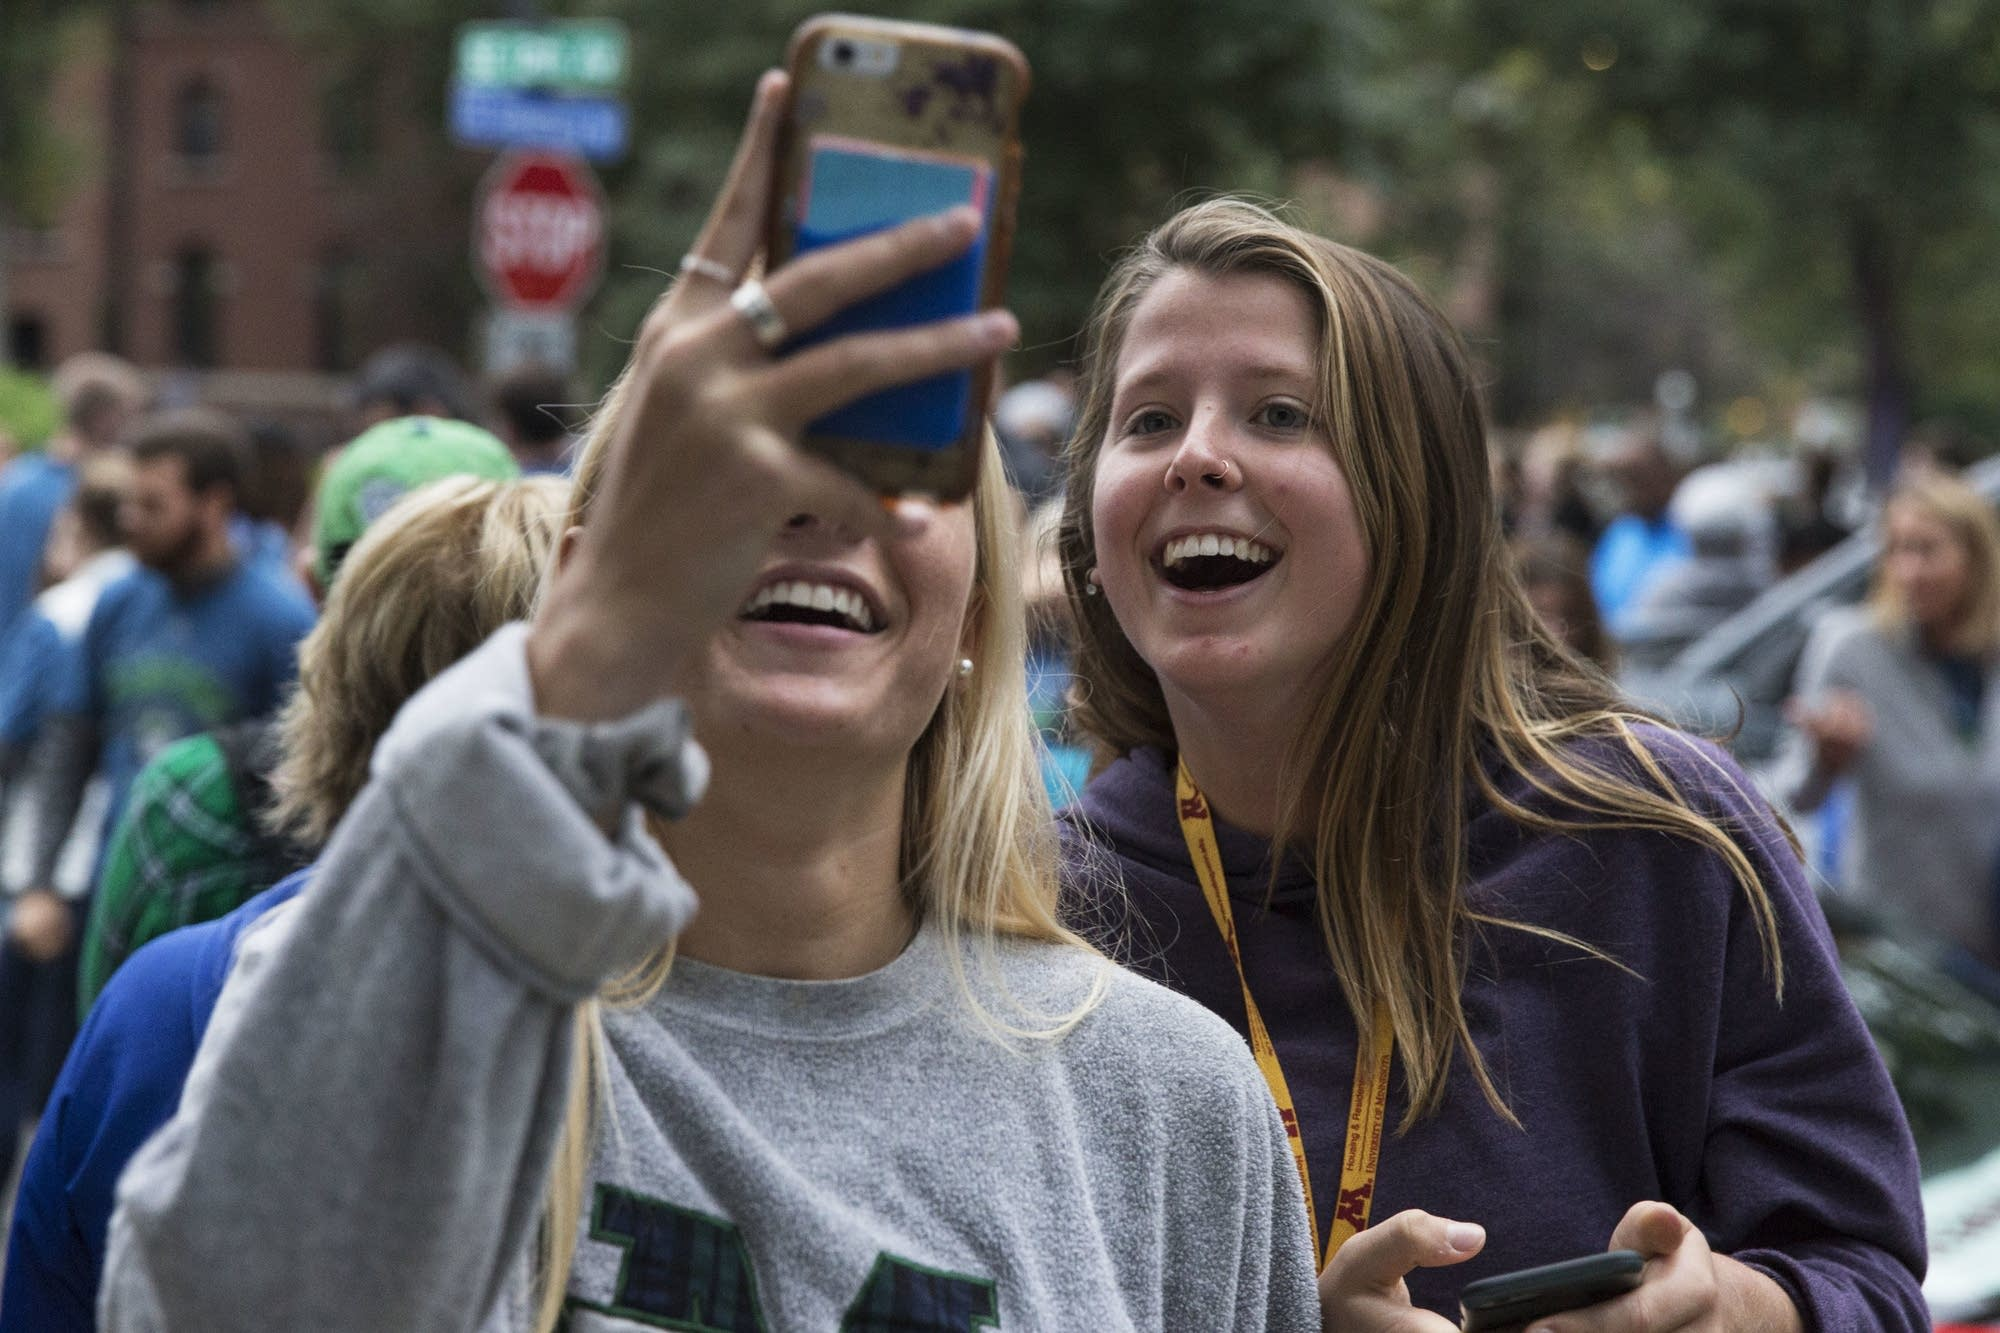 Izzi Gilbert Burke and Stephanie Reuter share the parade on social media.